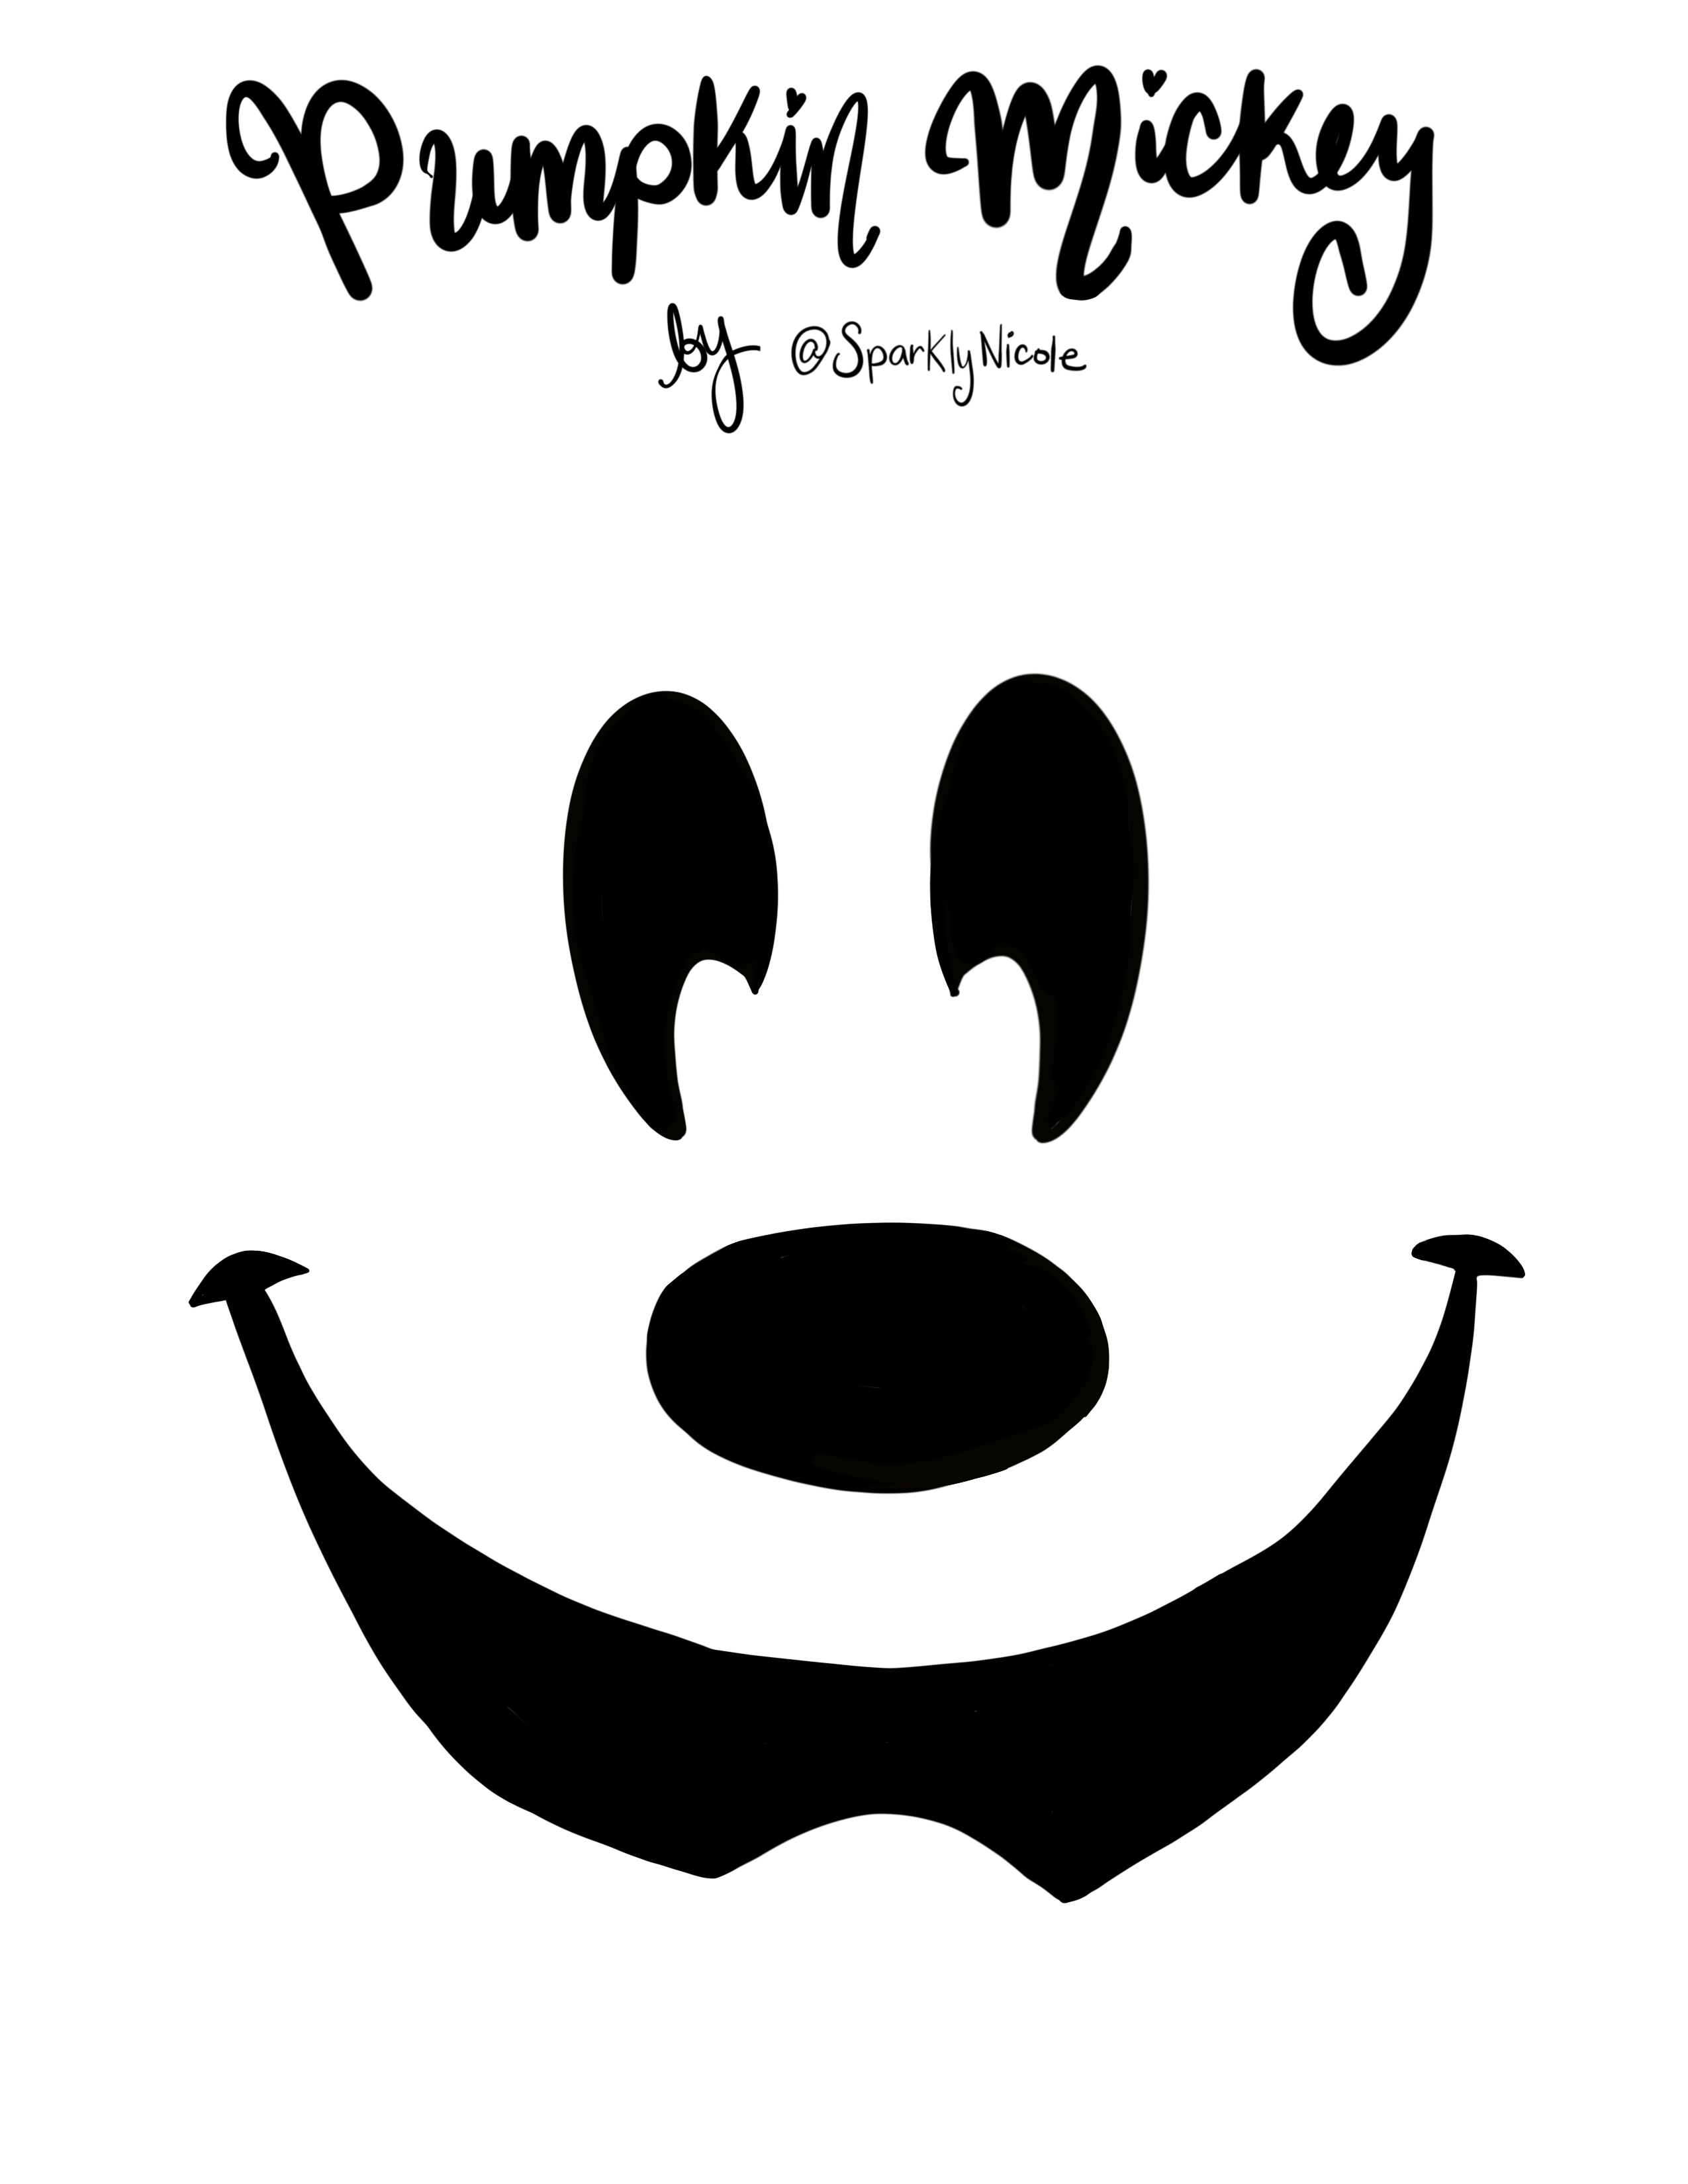 Disneyland Mickey Pumpkin Carving Stencil Sparkly Ever After